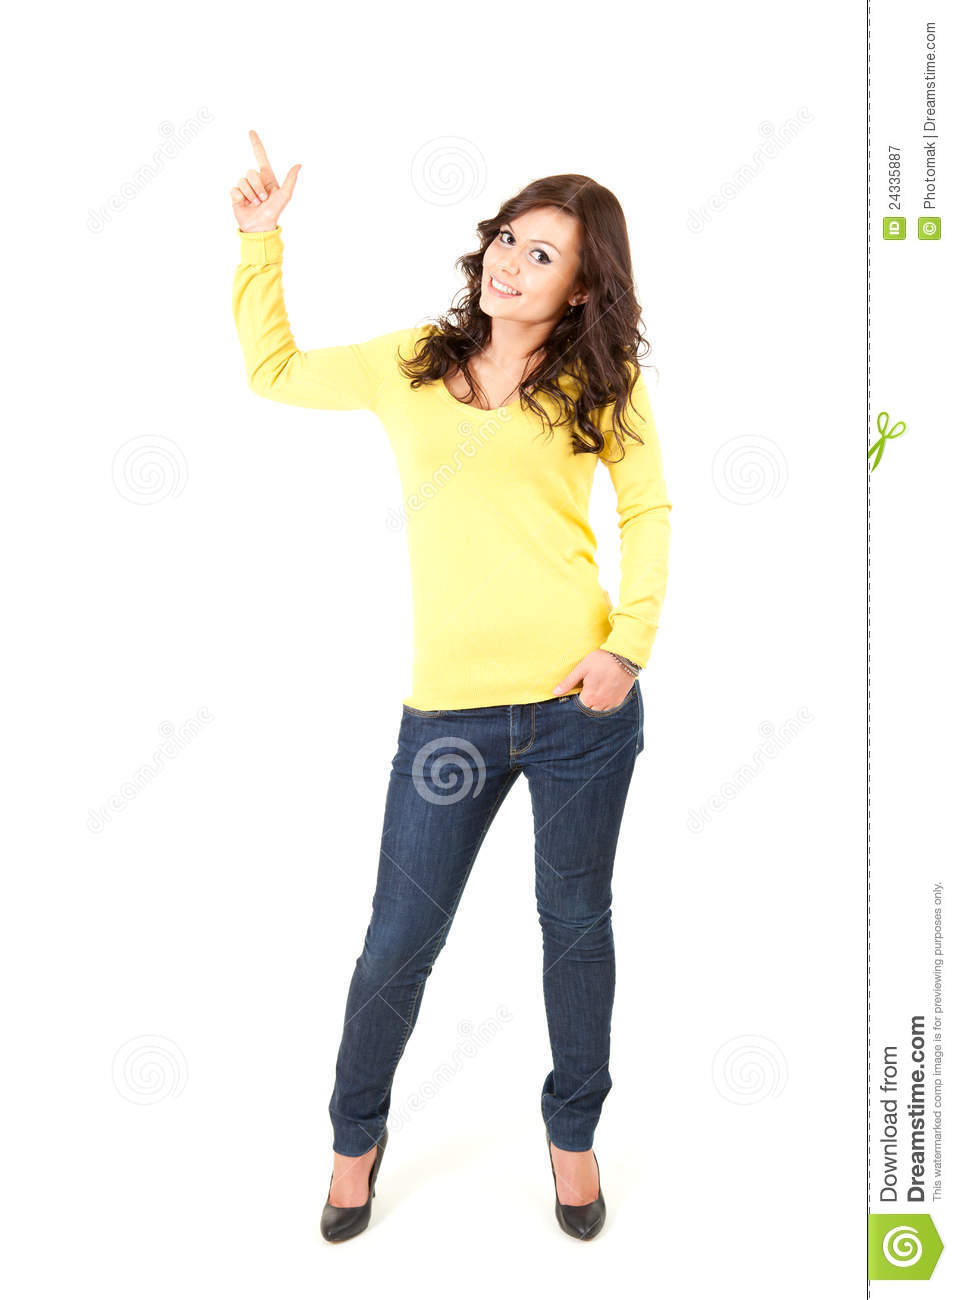 Teenage Girl Pointing Up Full Length Royalty Free Stock Photography